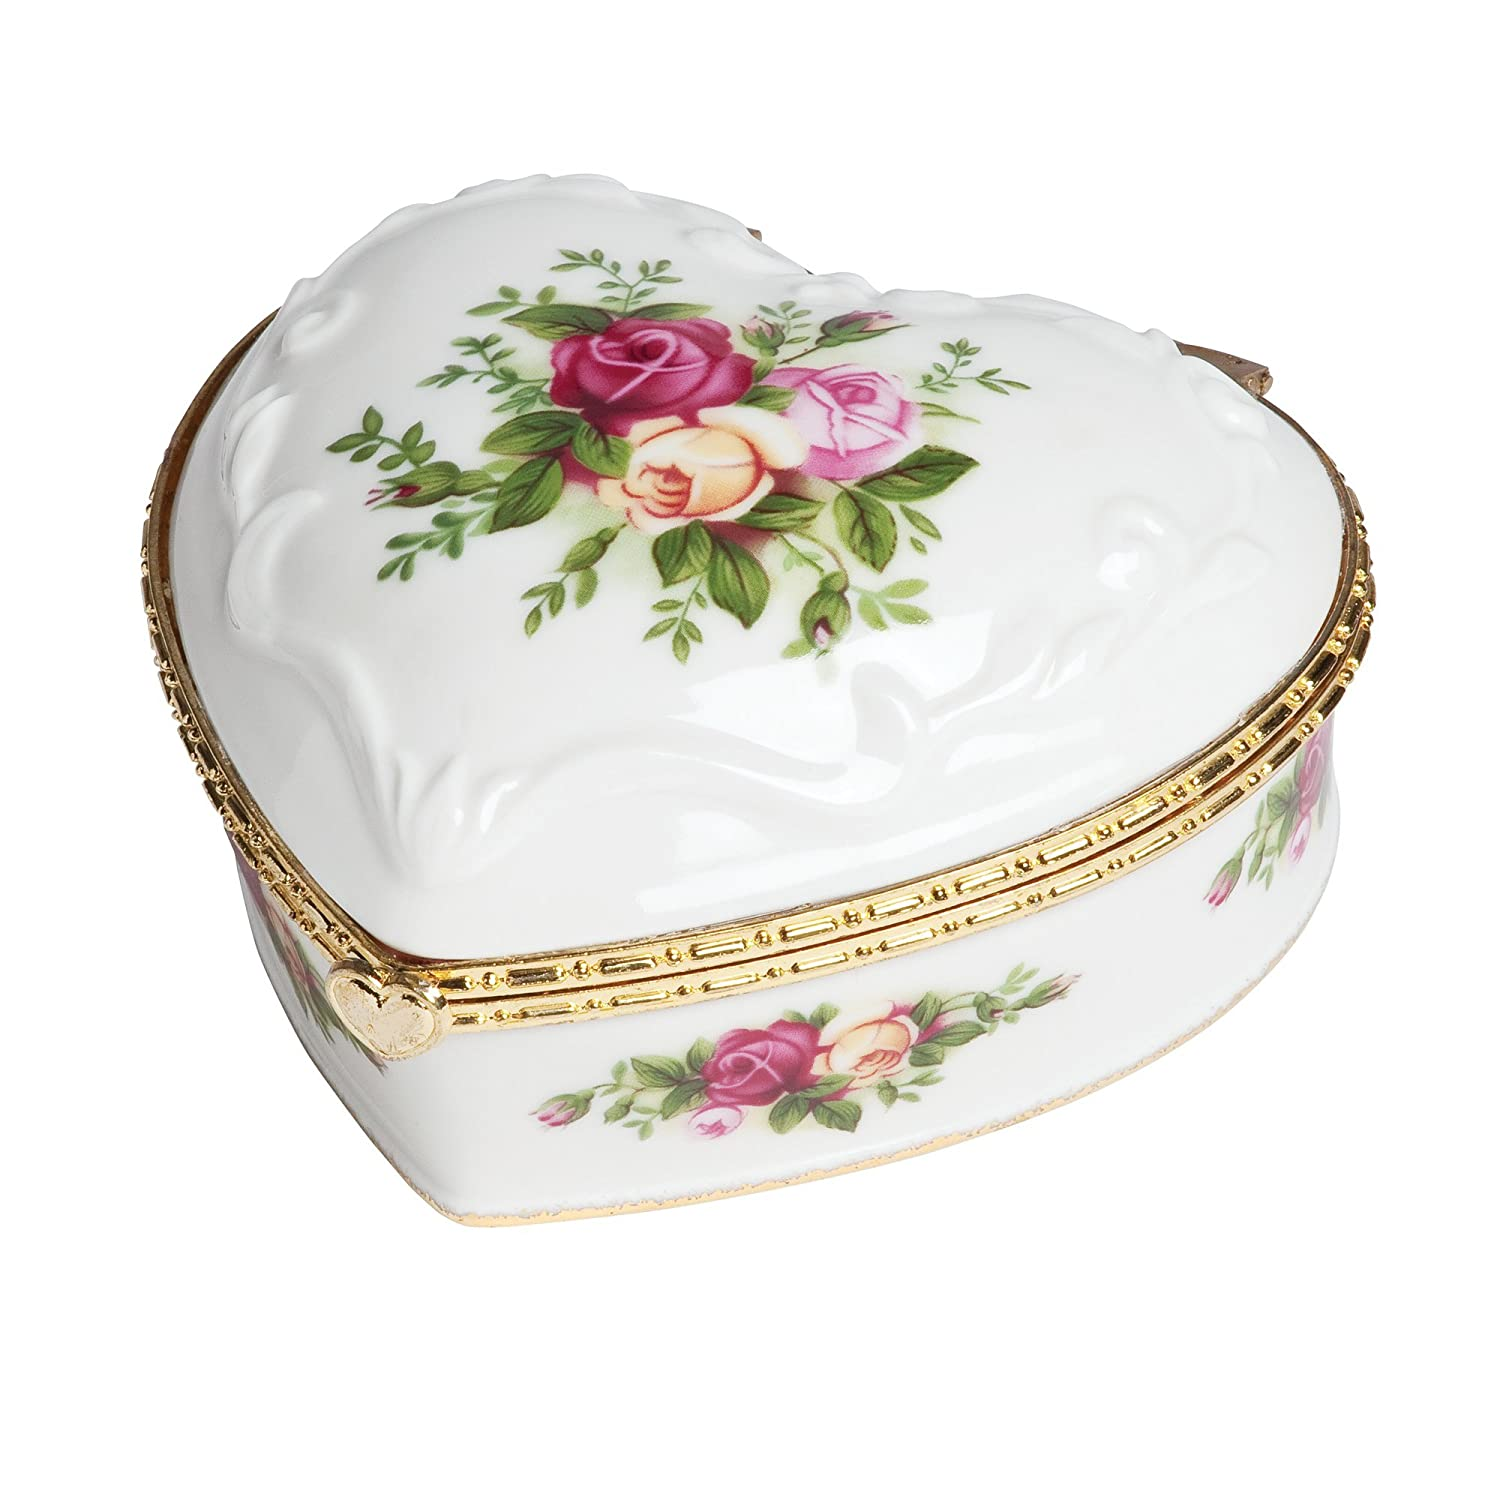 Royal Albert Old Country Roses Heart 4 Inch Jewelry Box If You Love Me by Royal Albert